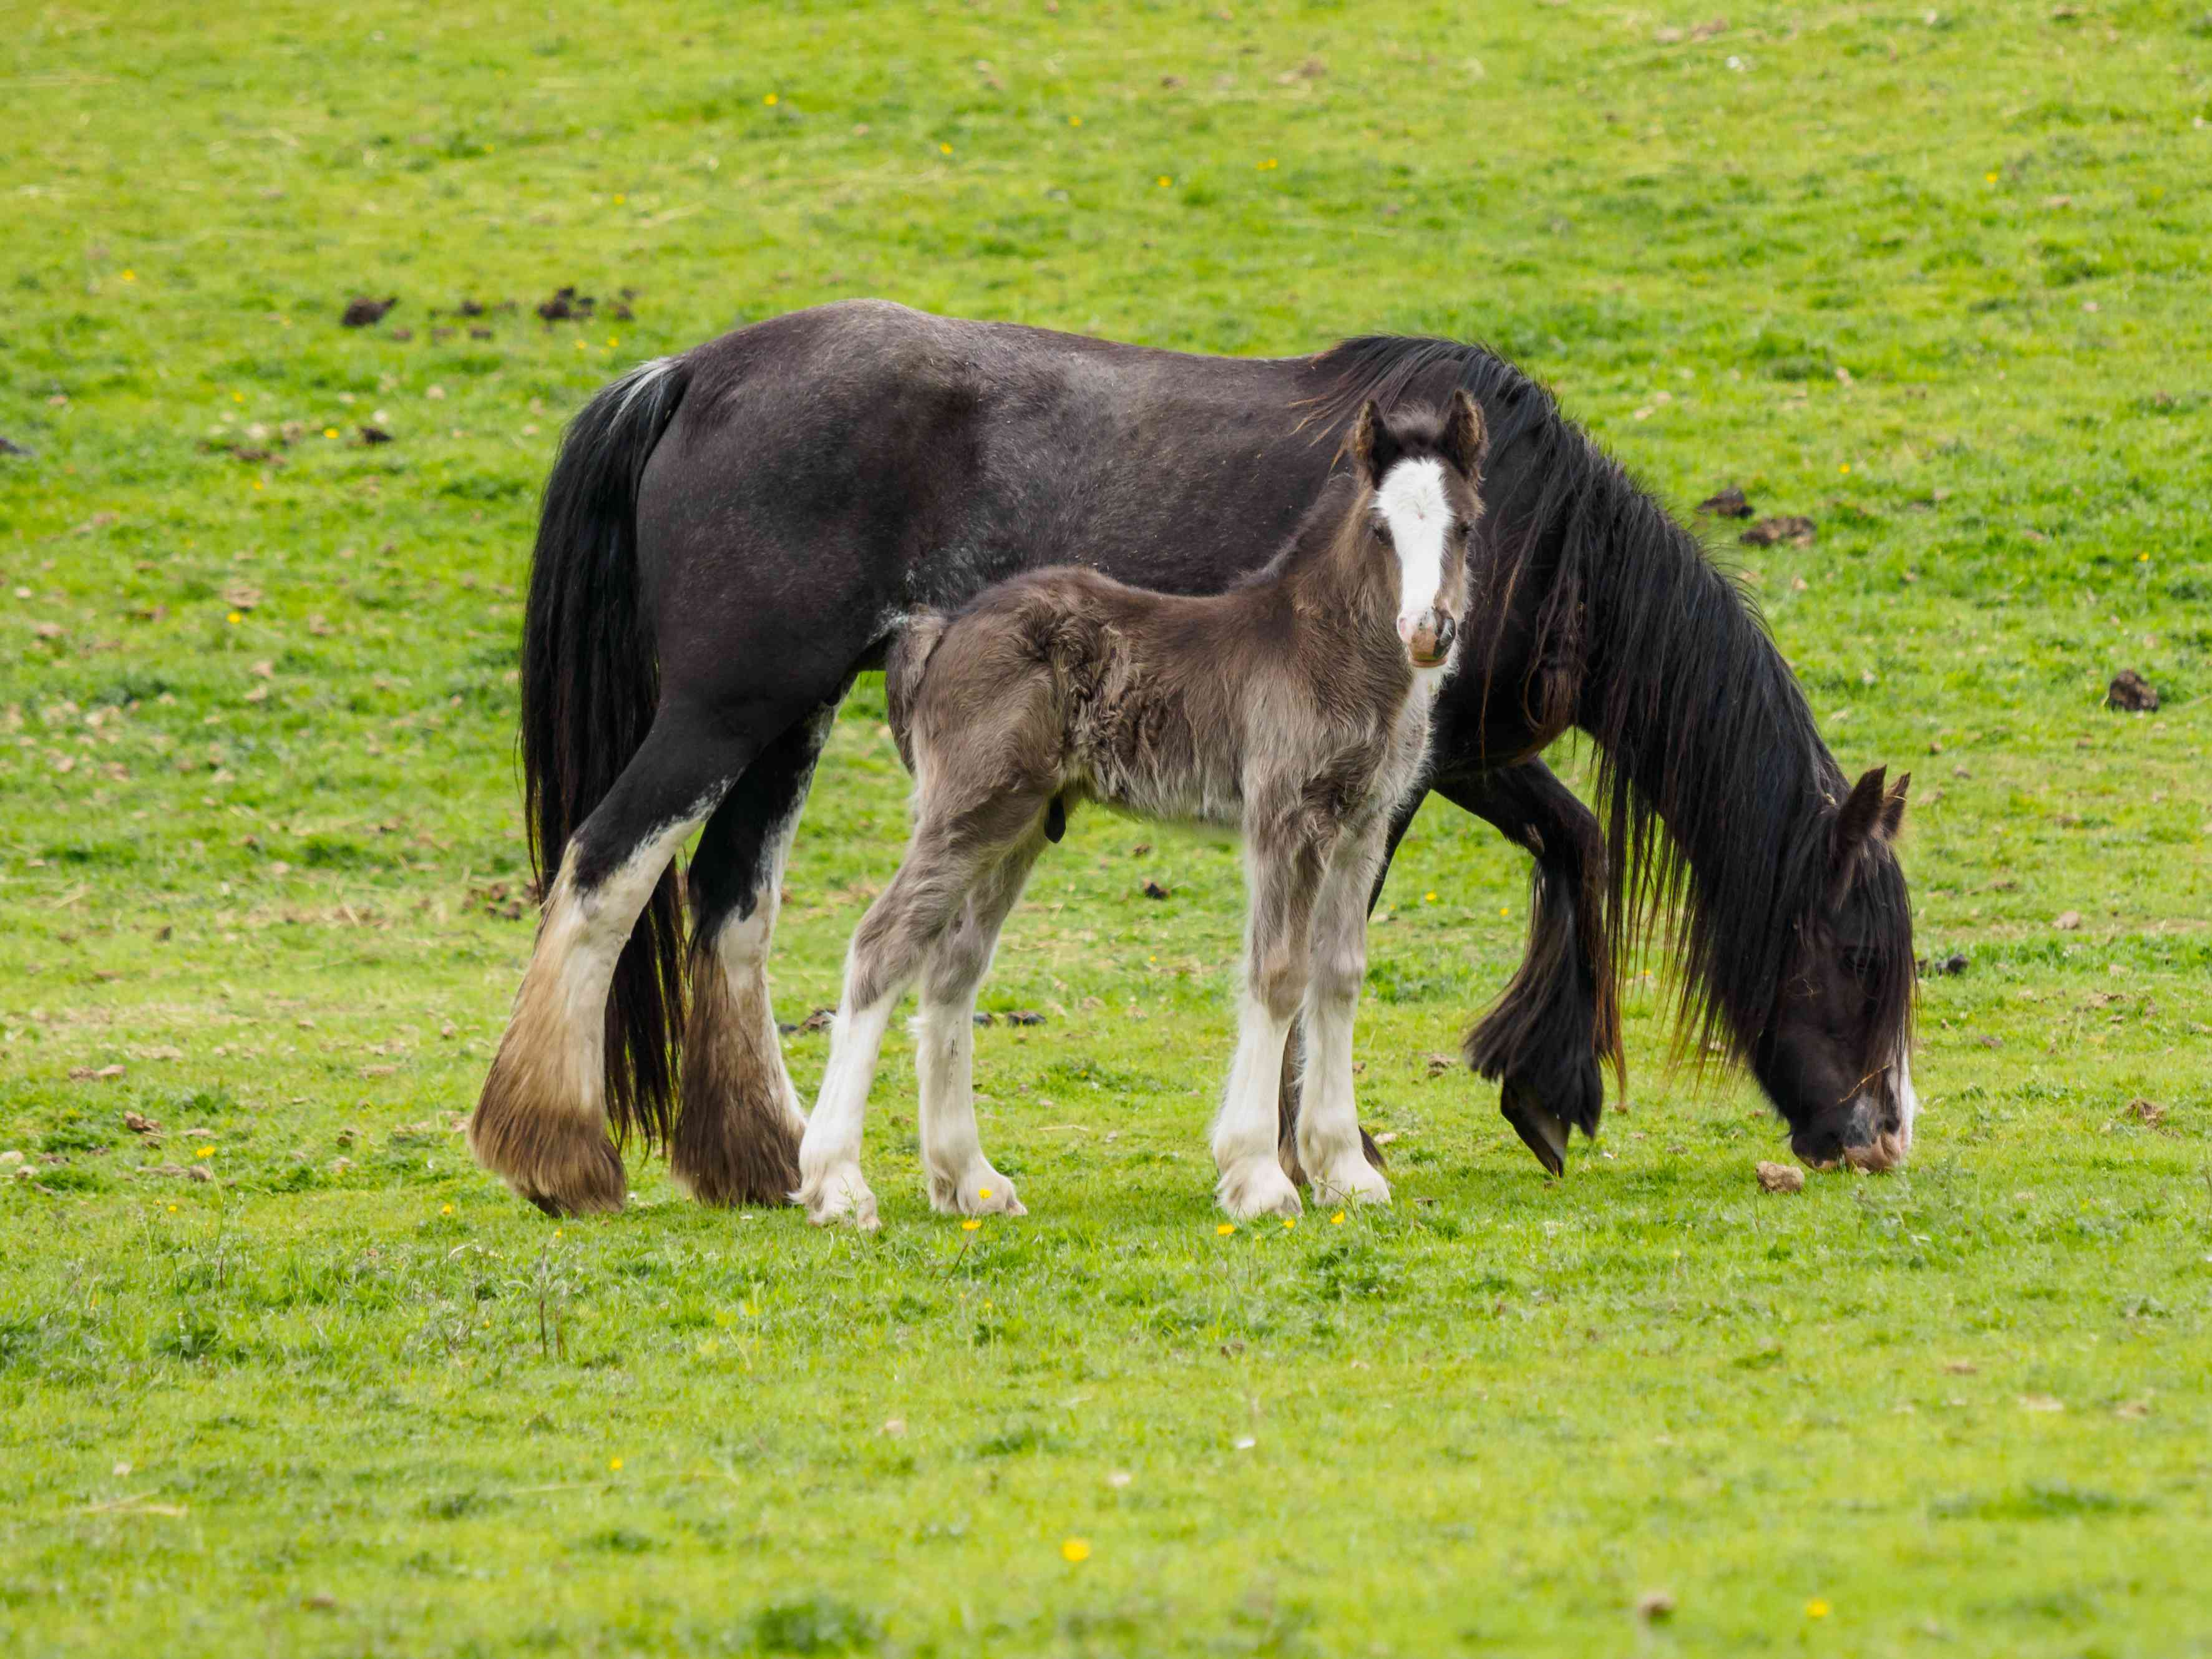 Gypsy Vanner mare and foal grazing in the pasture.